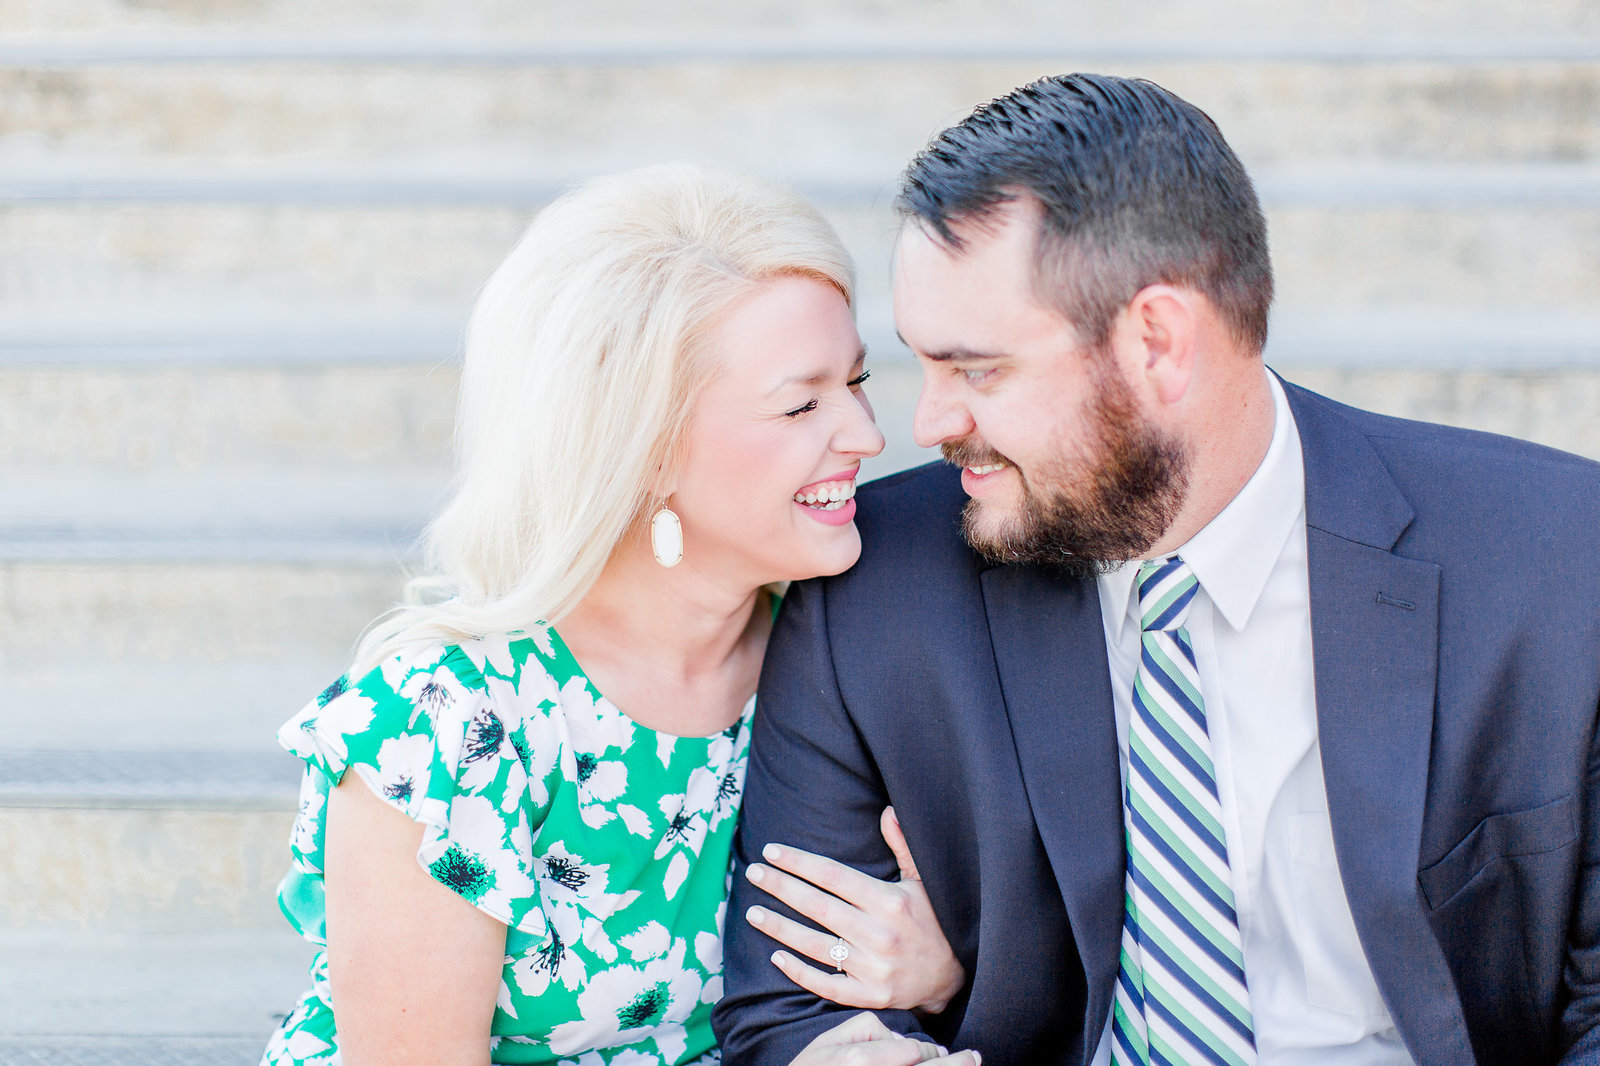 Tahlequah-Oklahoma-Engagement-Photographer-Holly-Felts-Photography-12